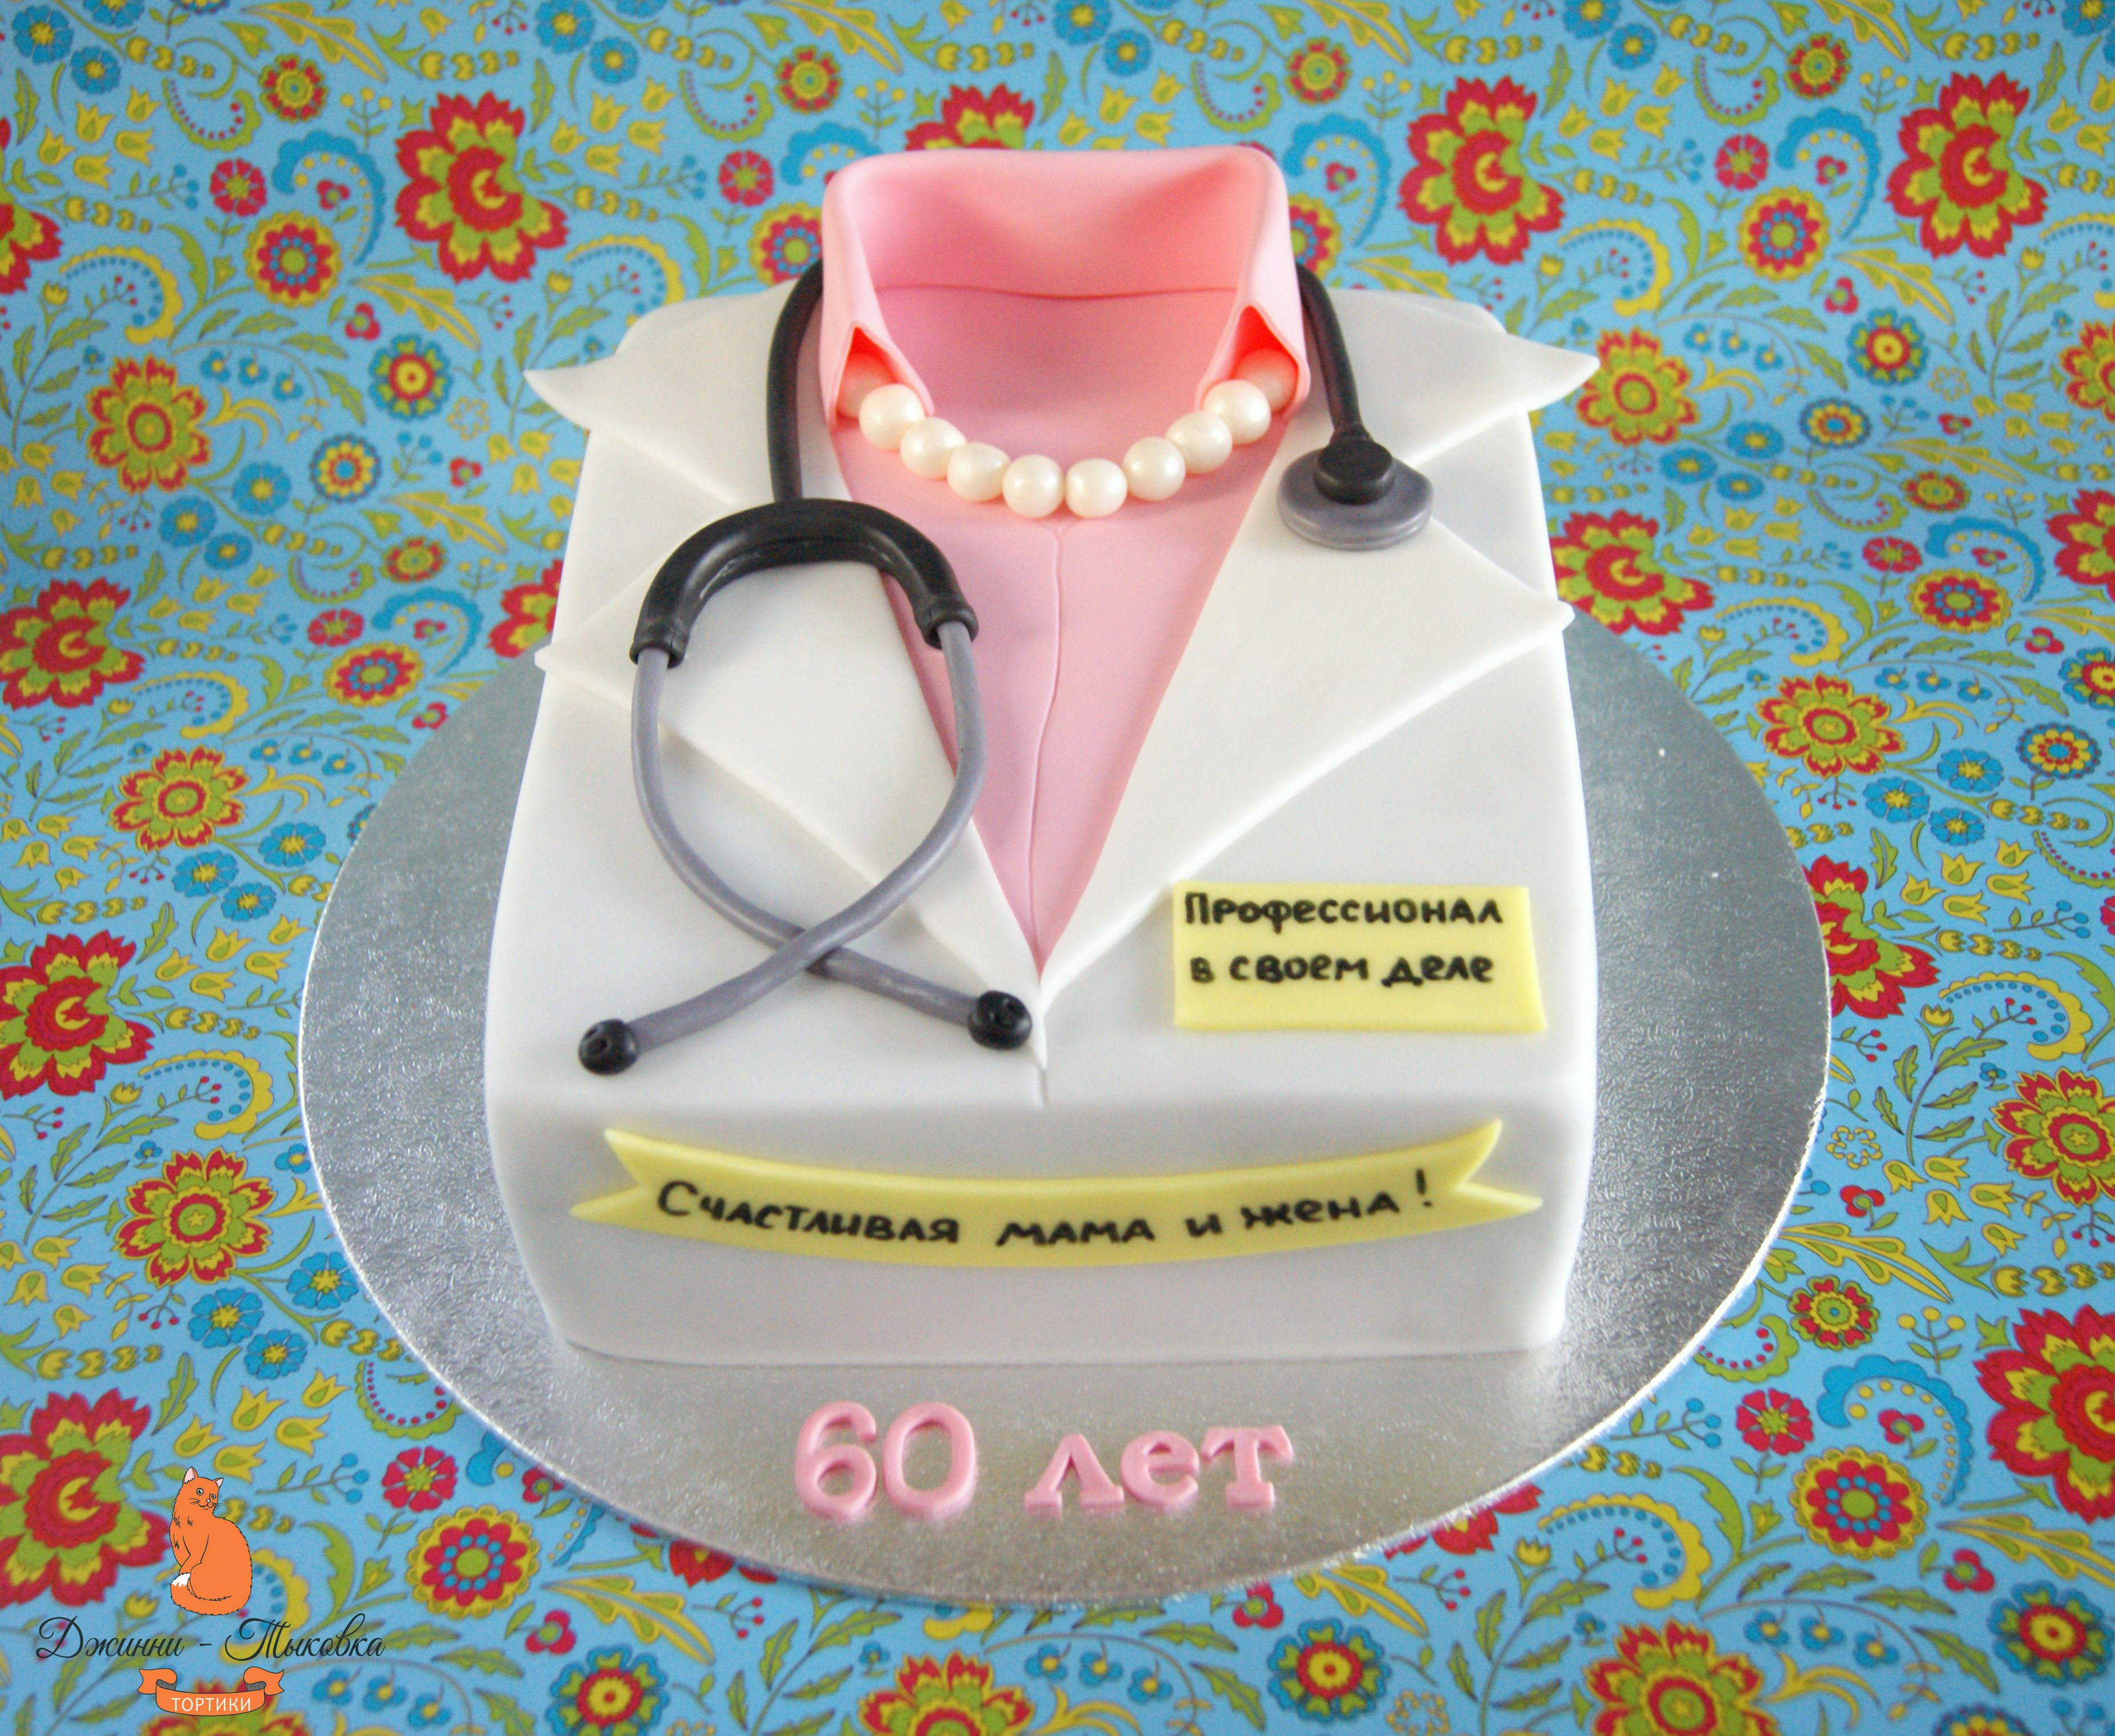 Cake Decorating Ideas For Doctors : doctor +cake, doctor cake ideas, doctor female +cake ...